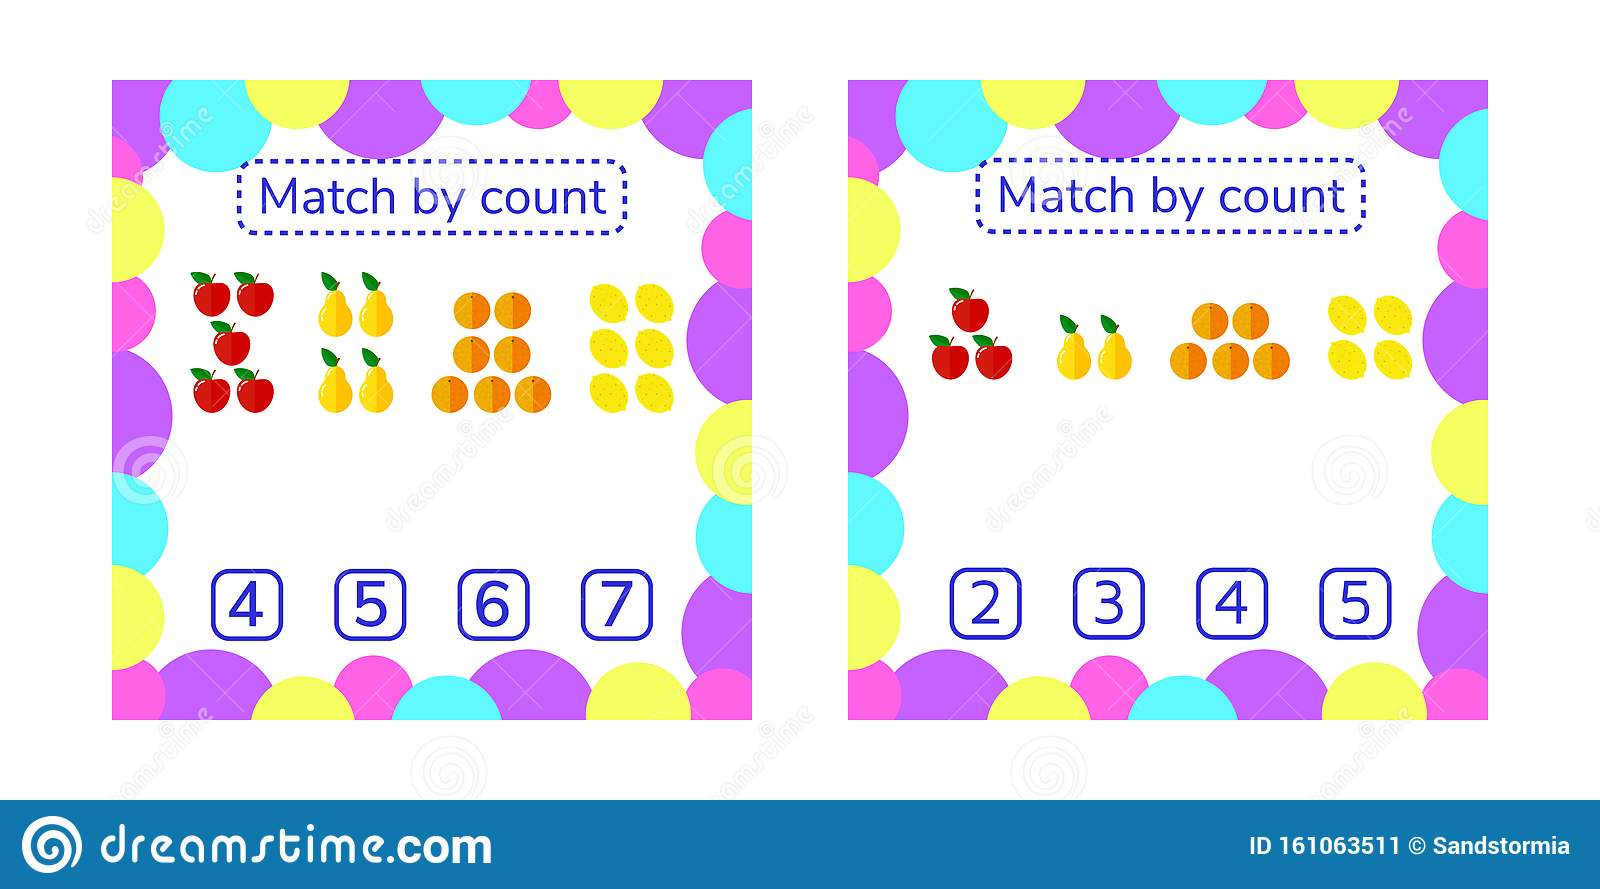 Counting Game For Preschool Children Count Items In The